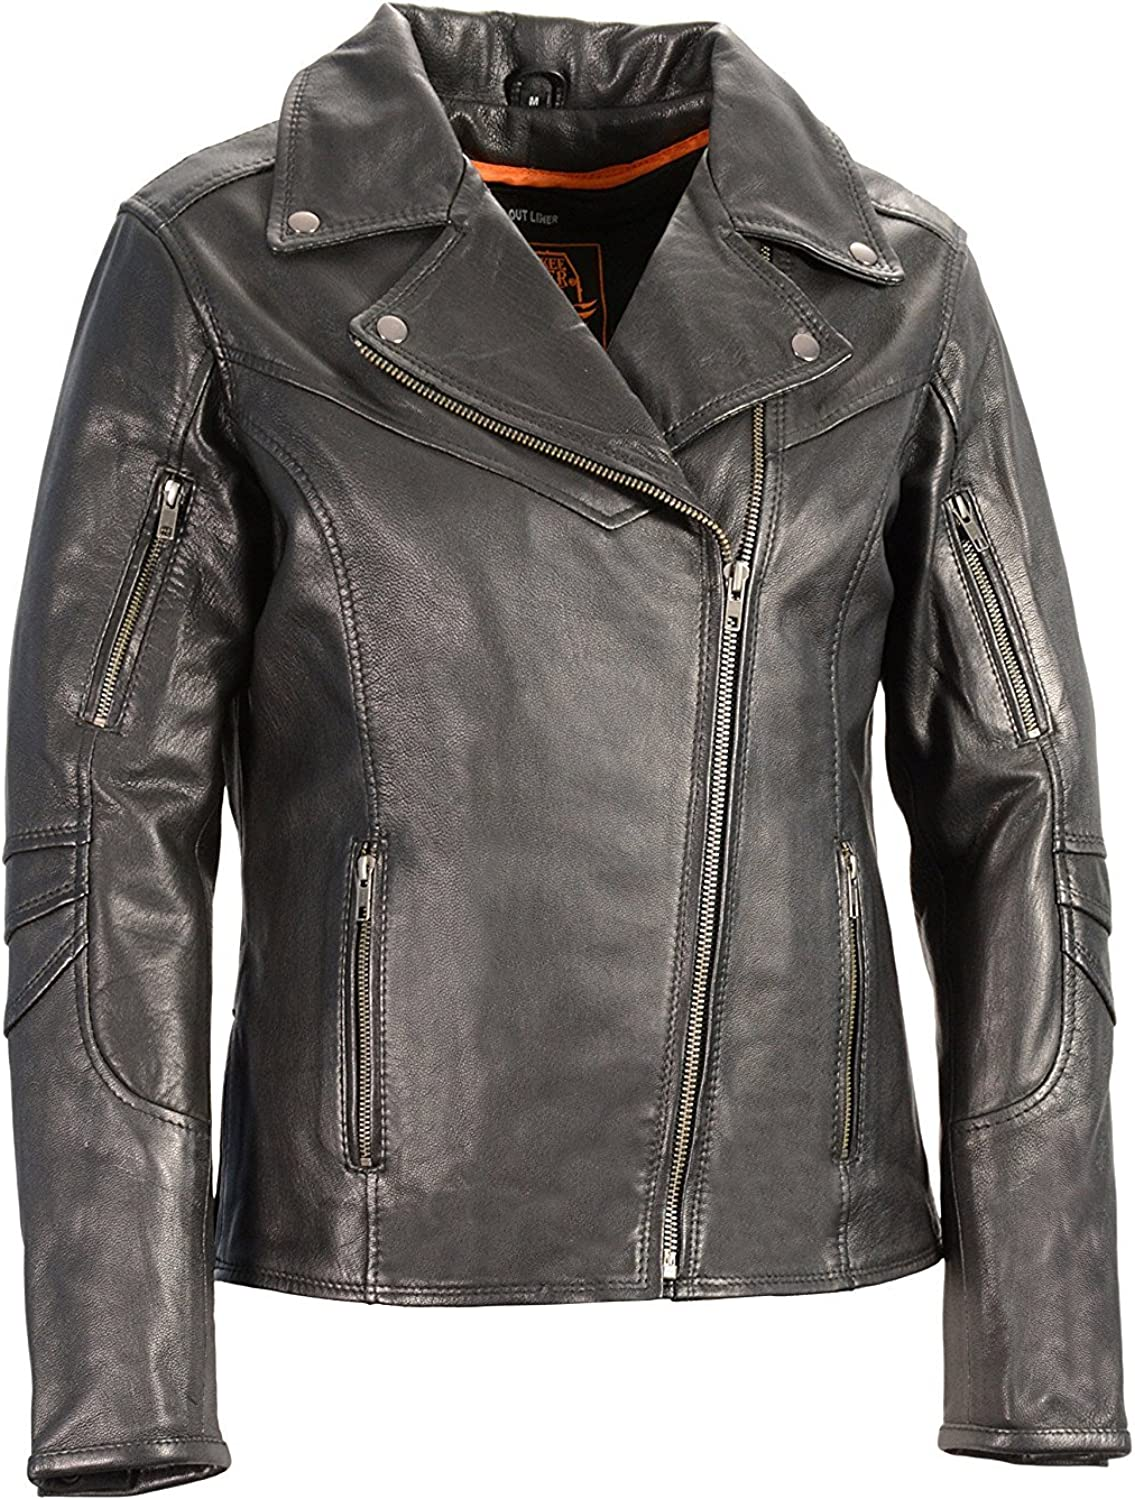 BABUBALA Stylish;pretty Leather Women's Vented Motorcycle Jacket (Black, XSmall)